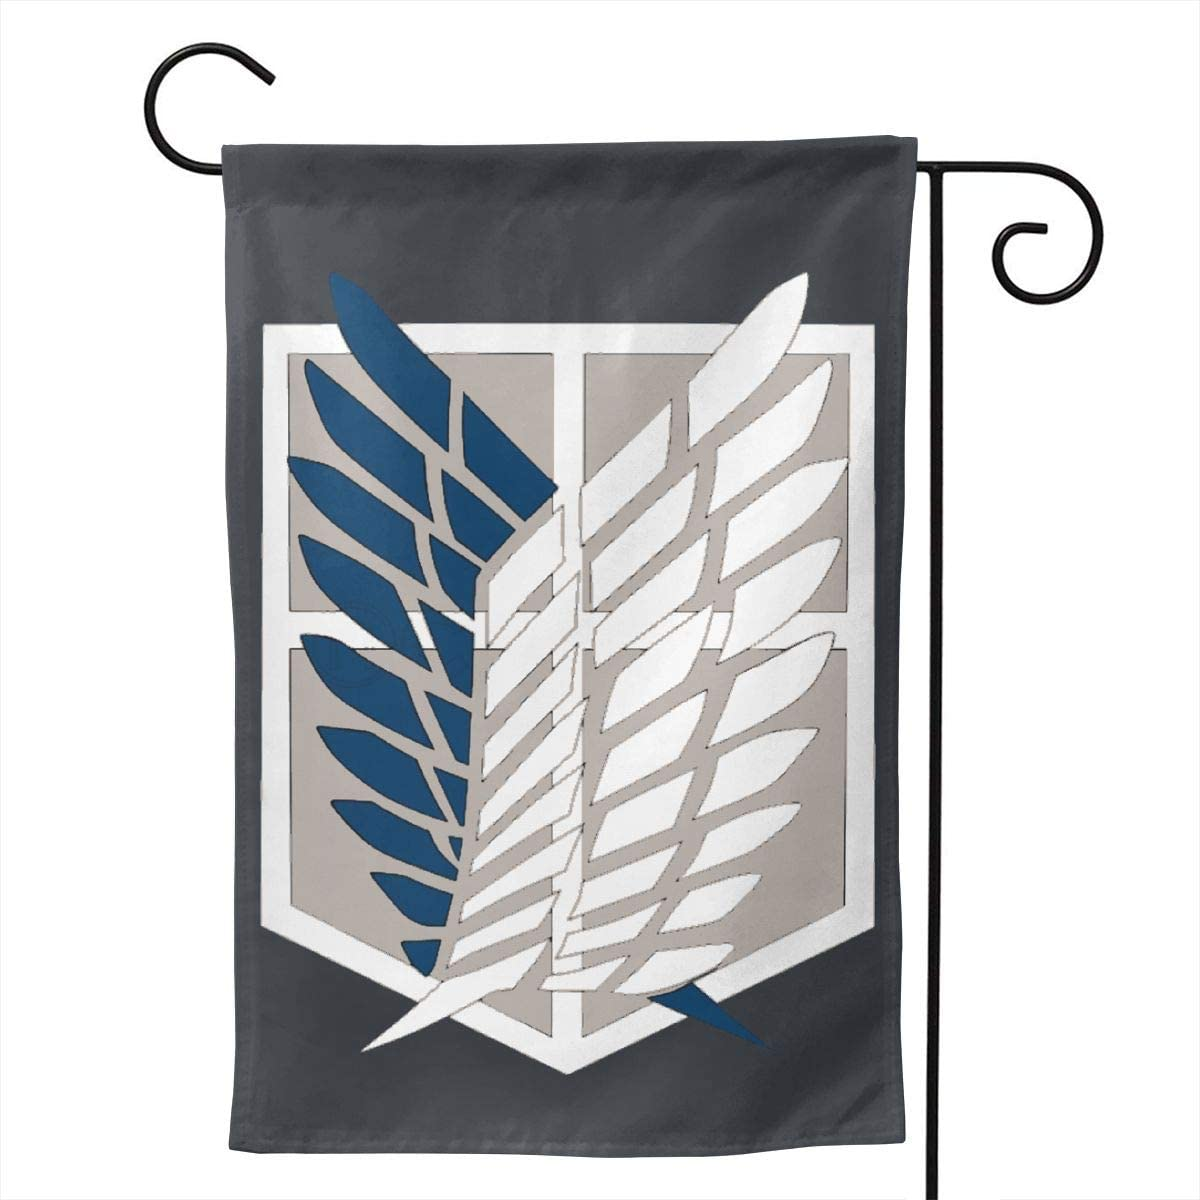 NOT Scouting Legion - Attack On Titan Outdoor Decor Garden Flag for All Seasons and Holidays Vertical Double Sided 12.5 X 18 Inch Square